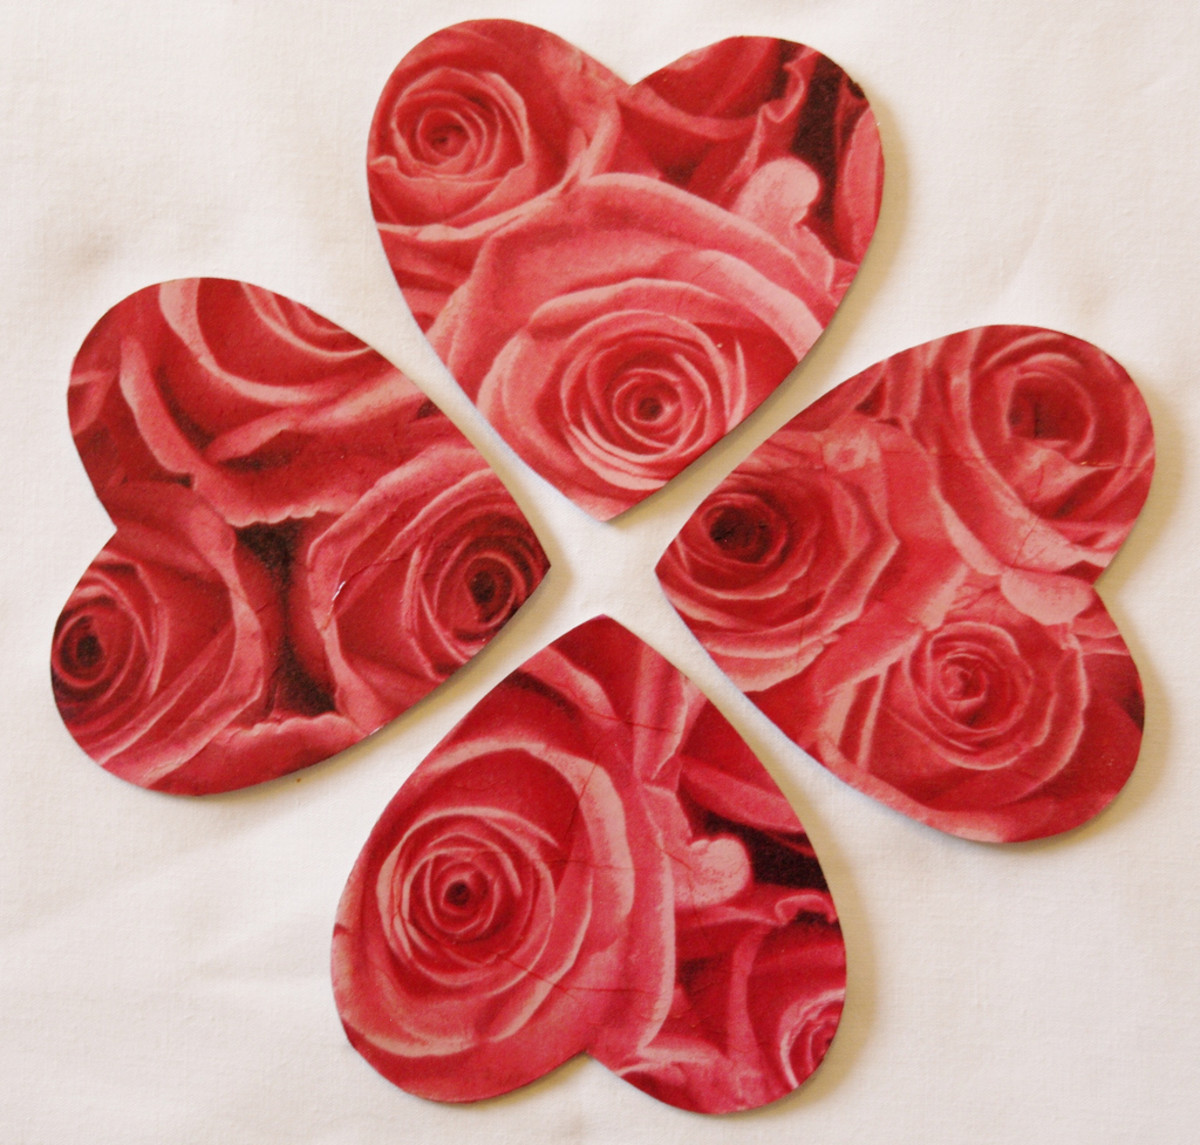 Use heart shaped coasters for your cocoa mugs to add a hint of romance to your decor!